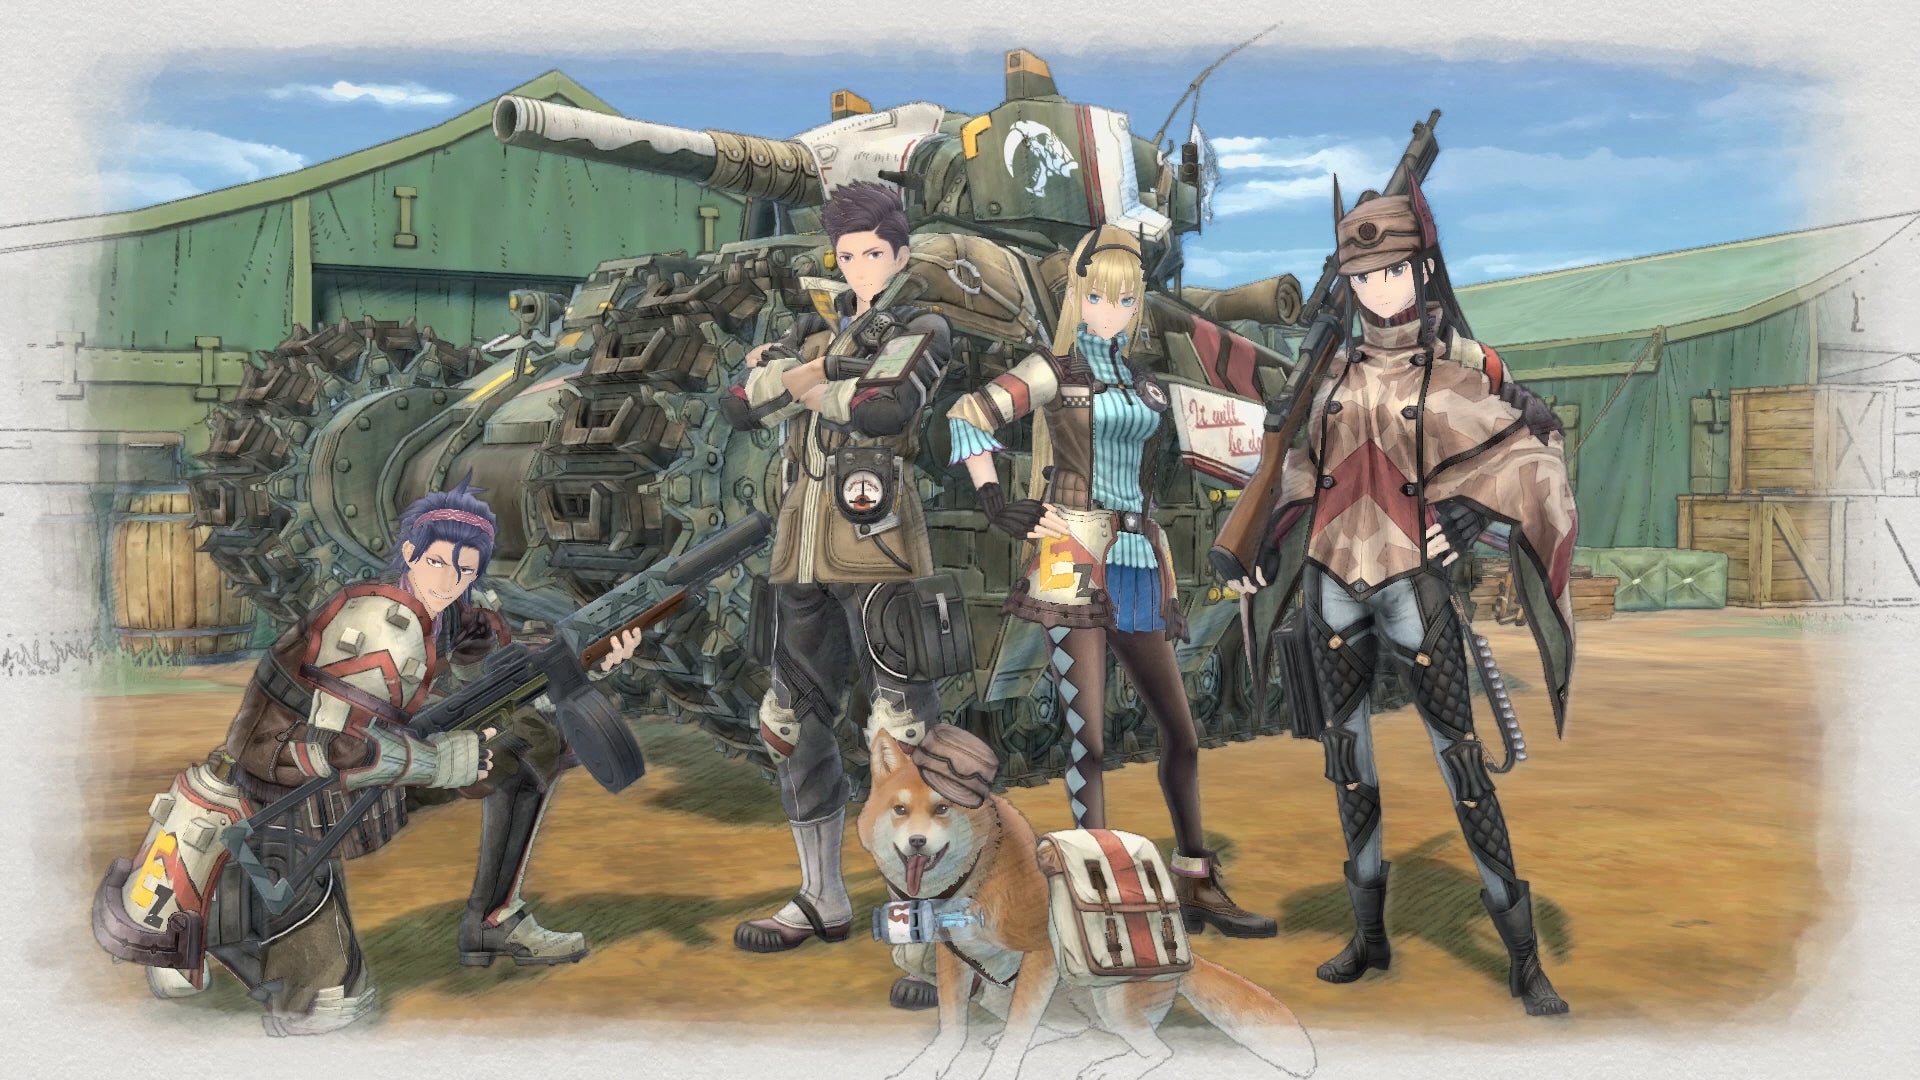 SEGA Bringing Valkyria Chronicles 4 to Xbox One in the West